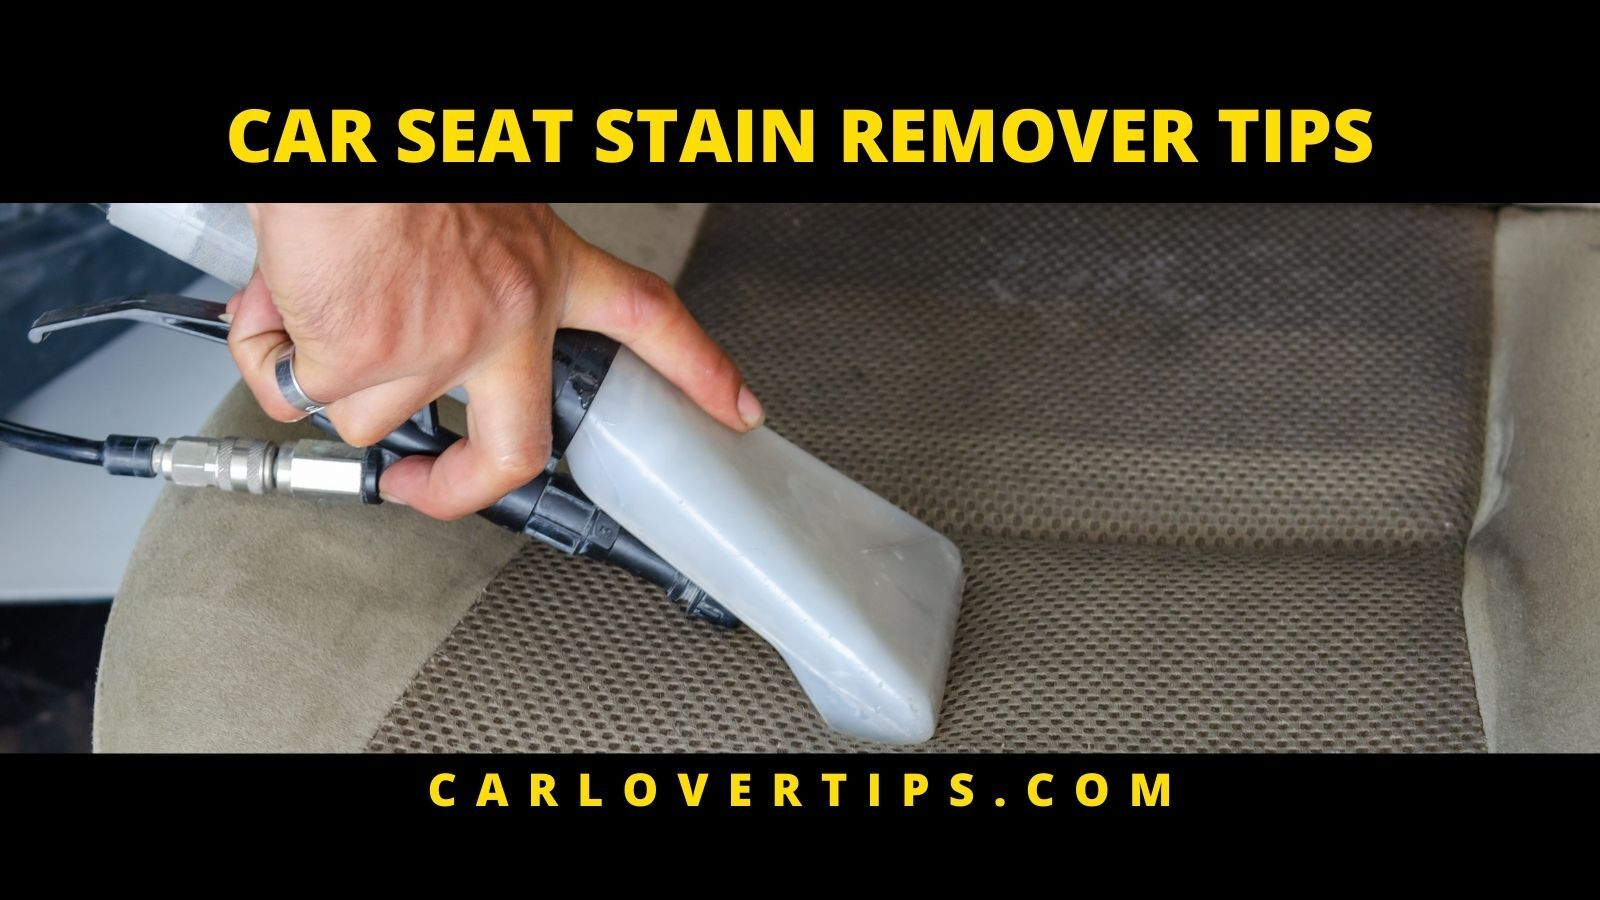 Car Seat Stain Remover Tips Car Lover Tips CAR